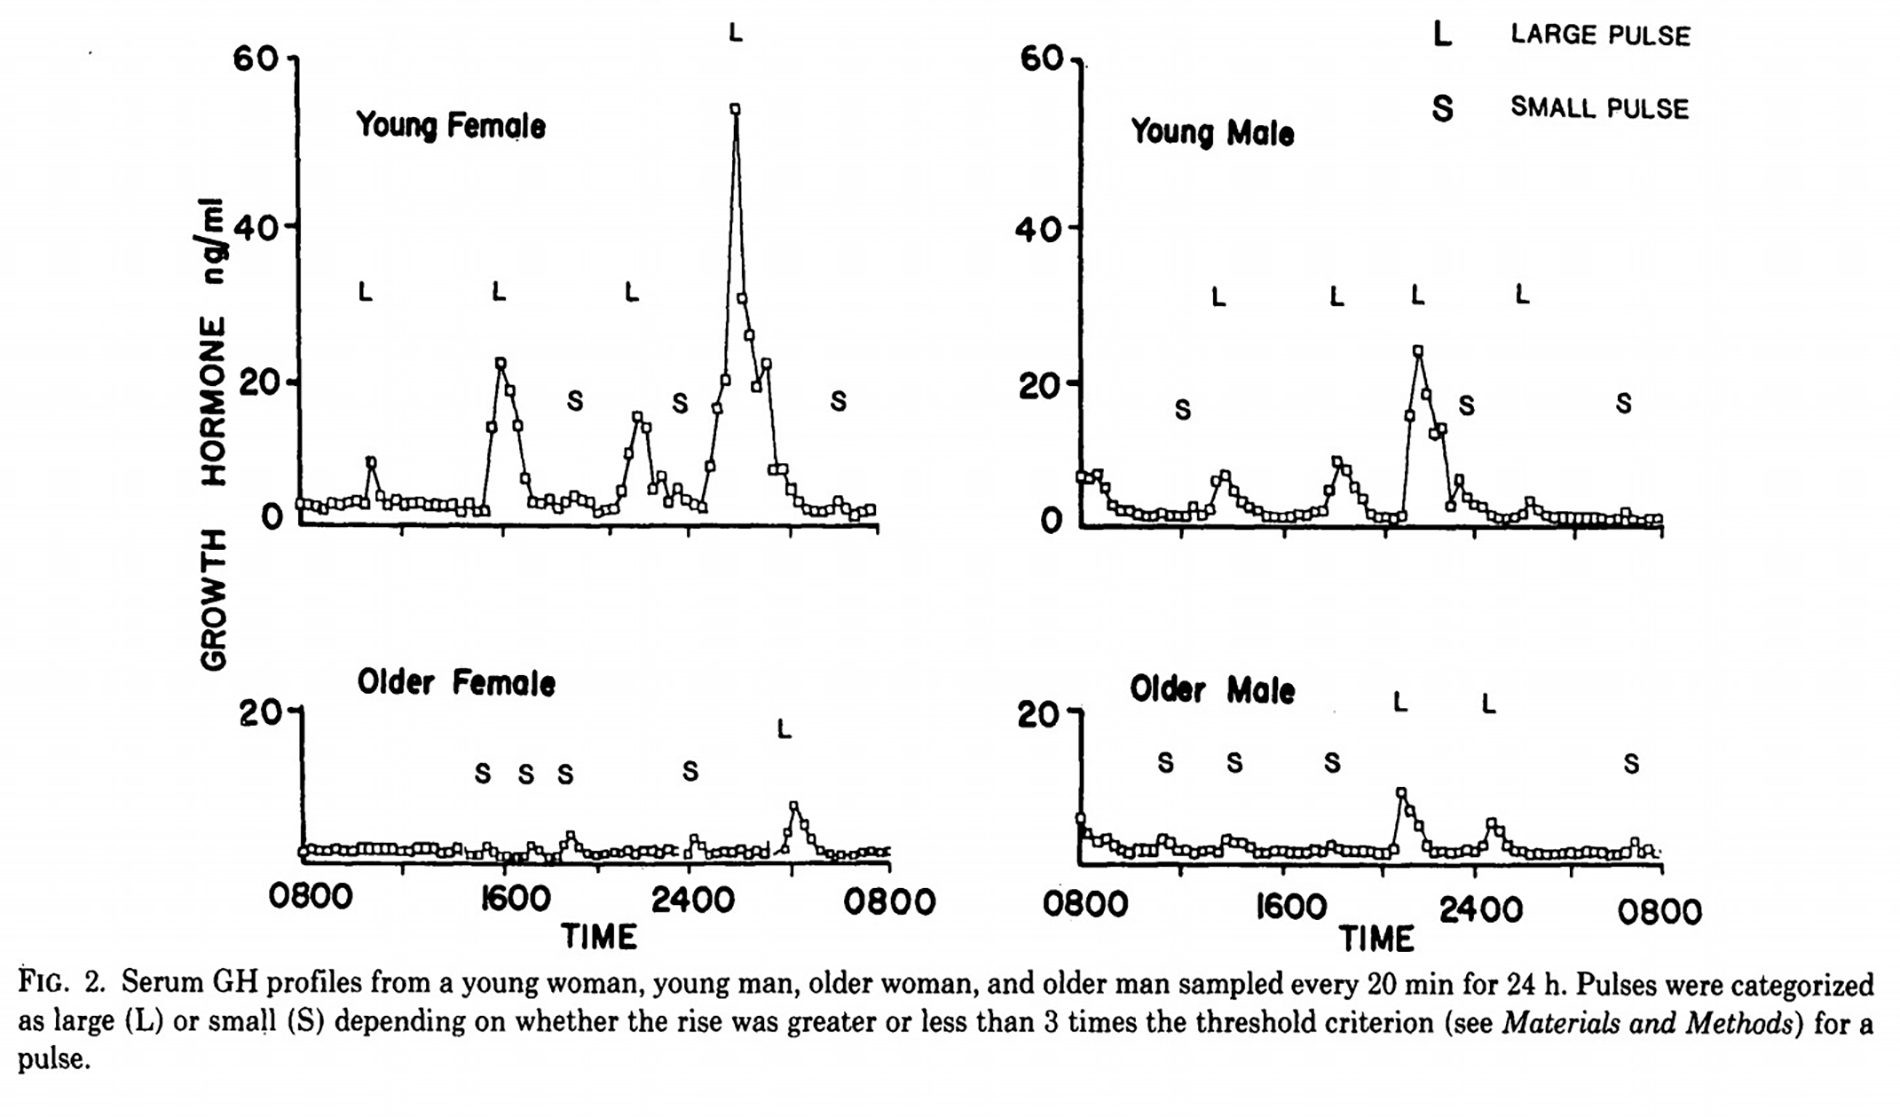 Serum levels of growth hormone in men and women, old and young, showing little difference between older men and women's levels.